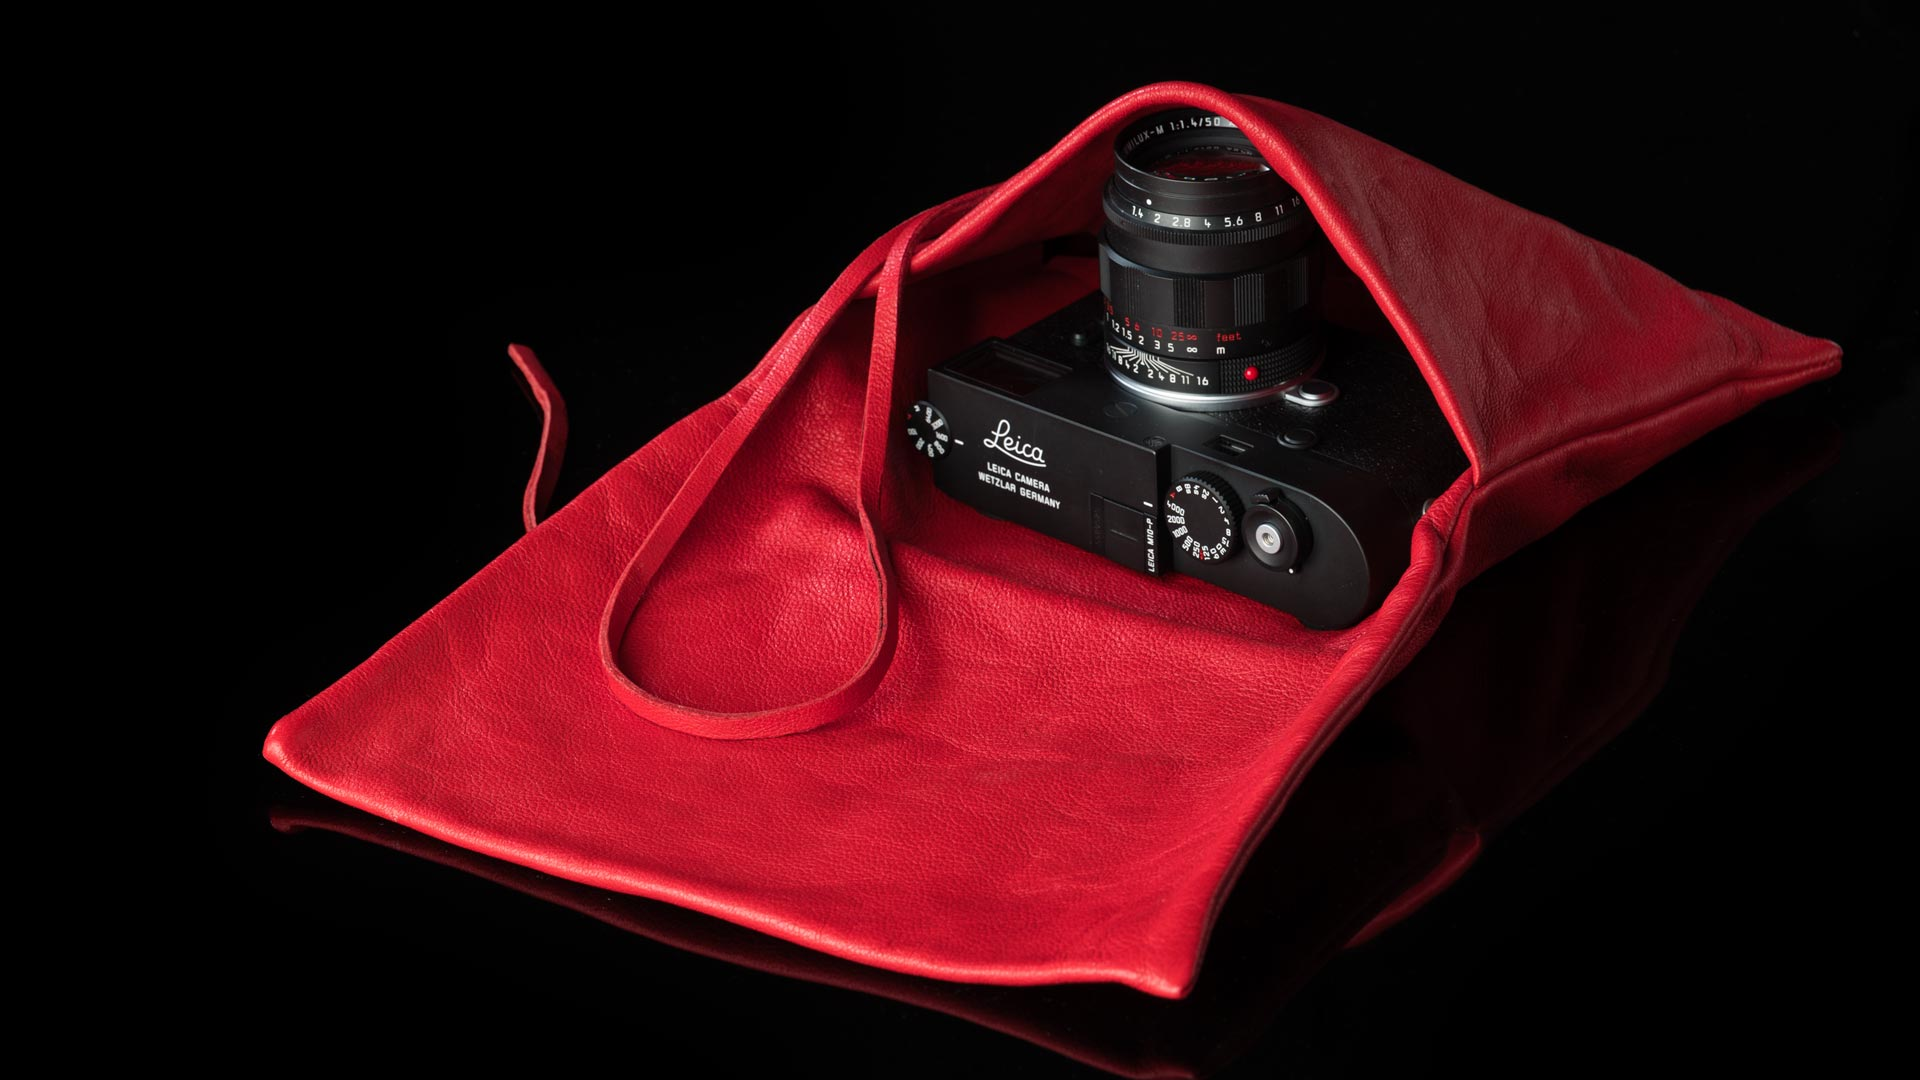 camera case, soft camera pouch, camera bag purse, small camera pouch, camera lens pouch, camera purse, dslr camera pouch, mirrorless camera pouch, dslr pouch, leather camera pouch